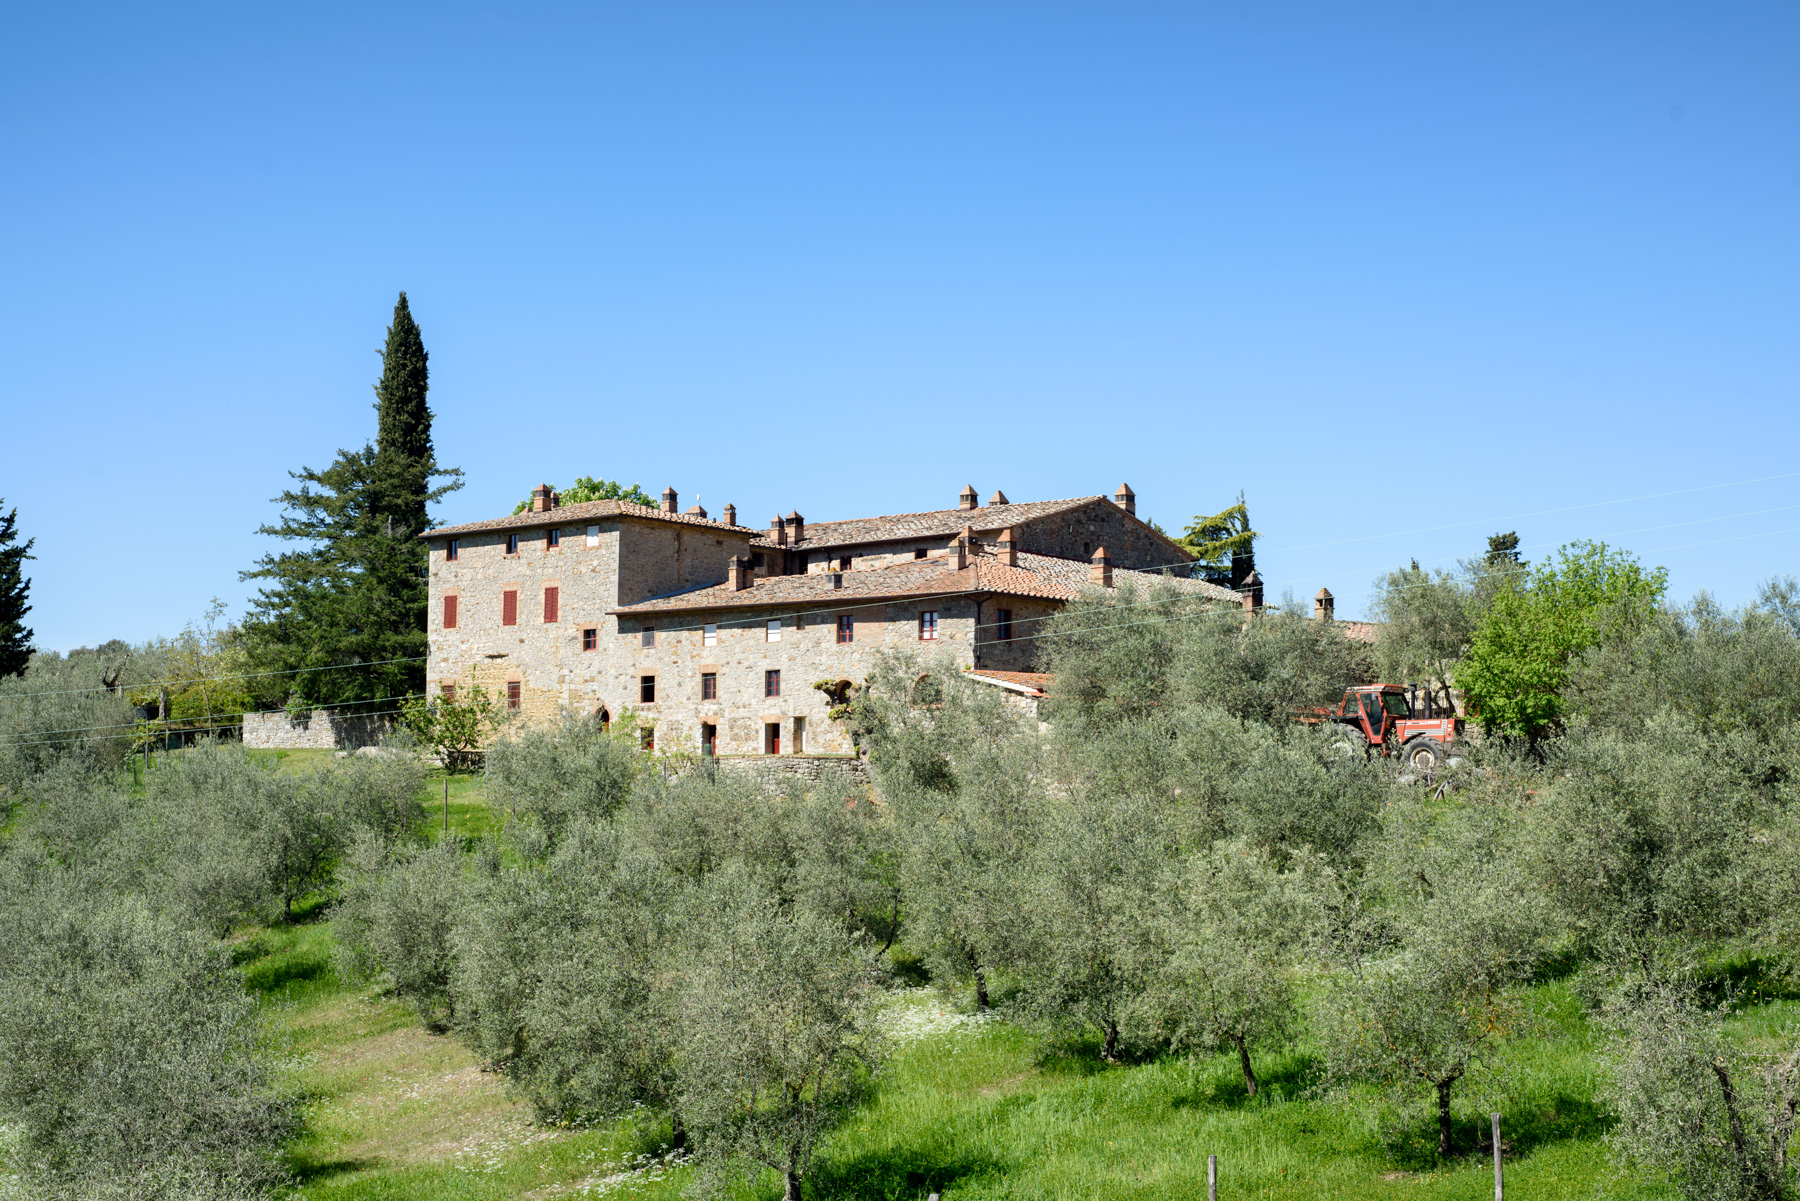 Single Family Home for Sale at Unique property in the heart of Chianti Le Pici Castelnuovo Berardenga, 53019 Italy